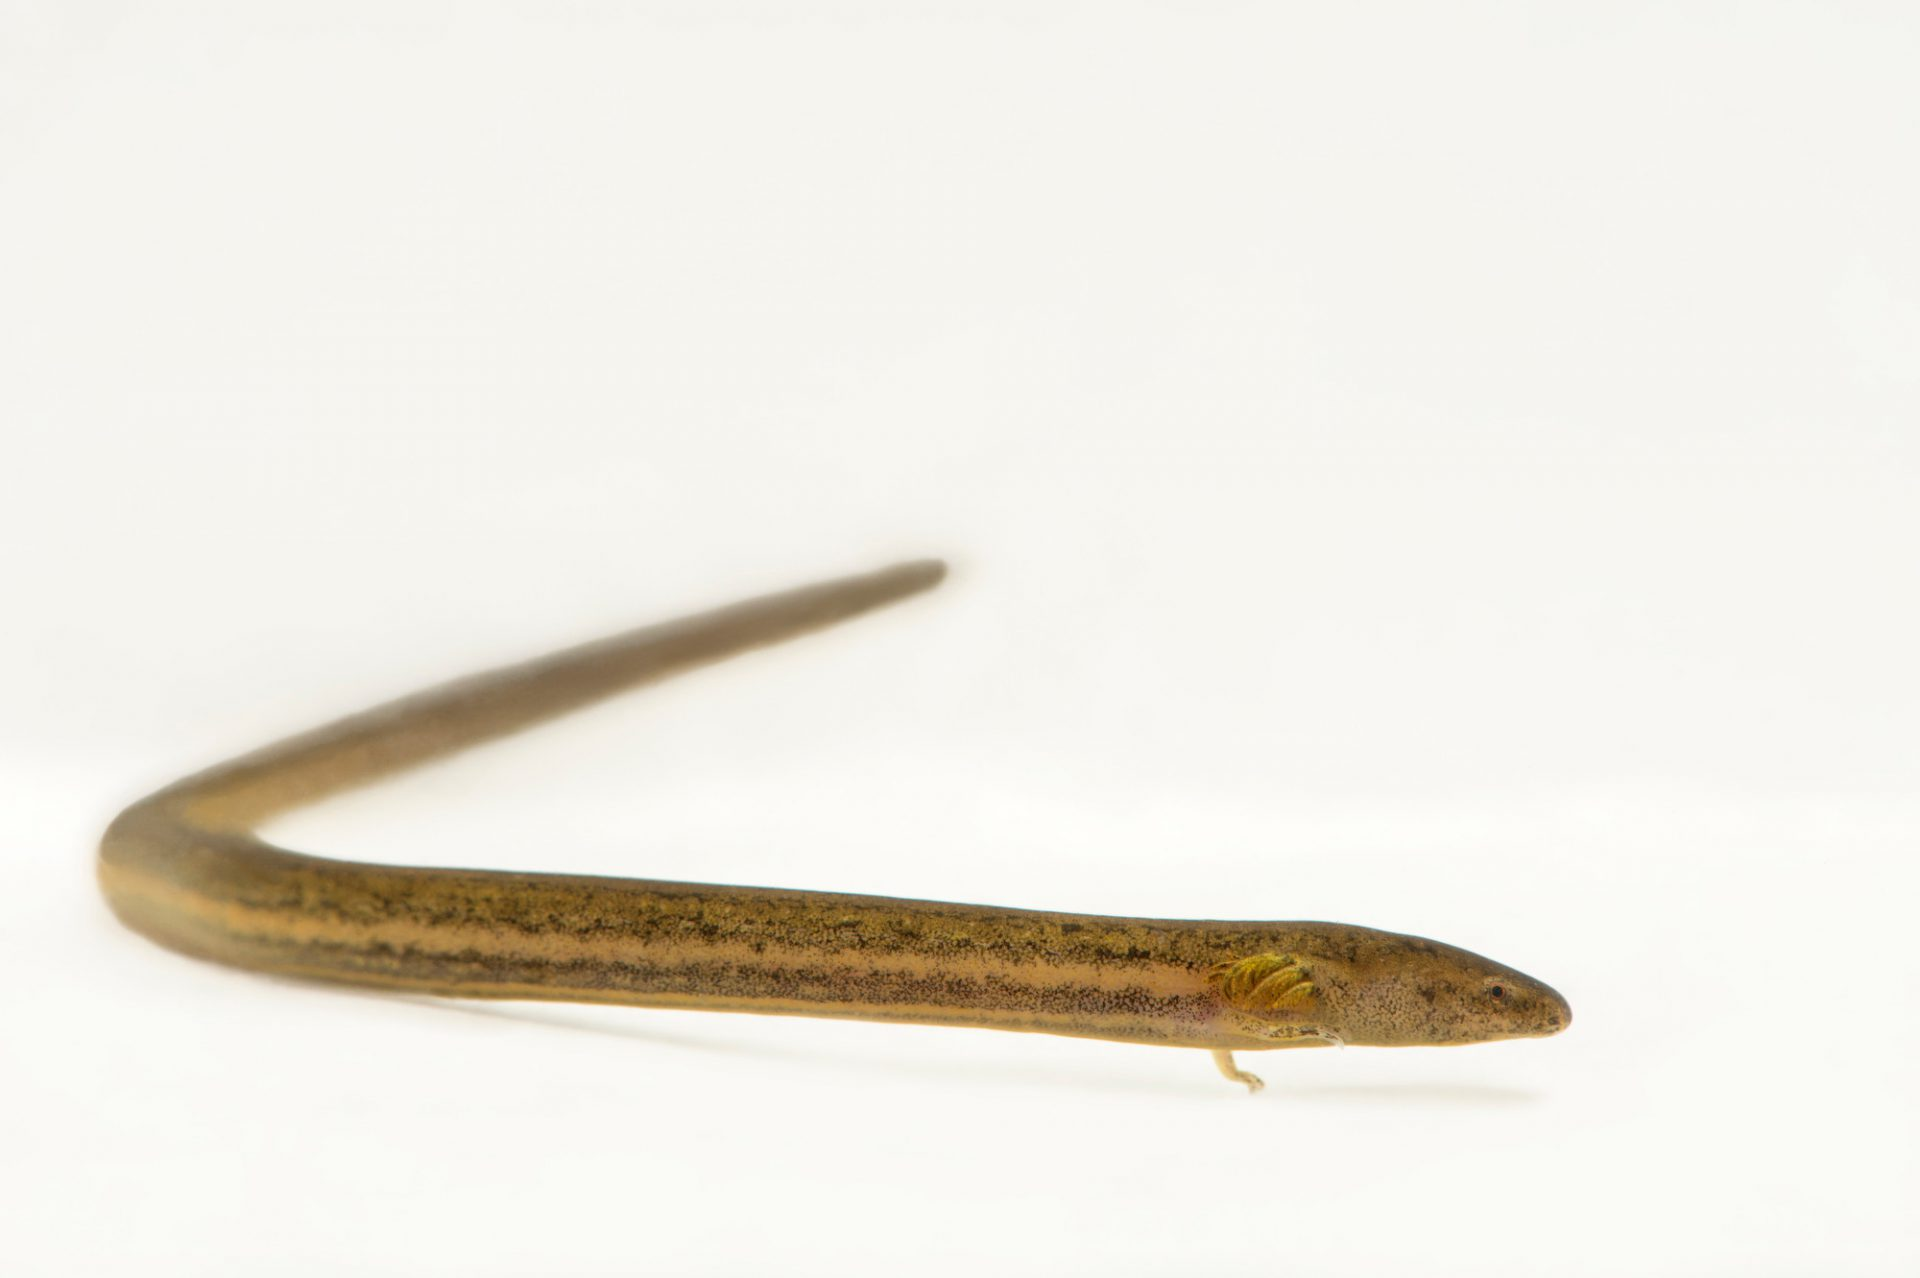 Photo: A narrow-striped dwarf siren (Pseudobranchus axanthus axanthus) from a private collection.